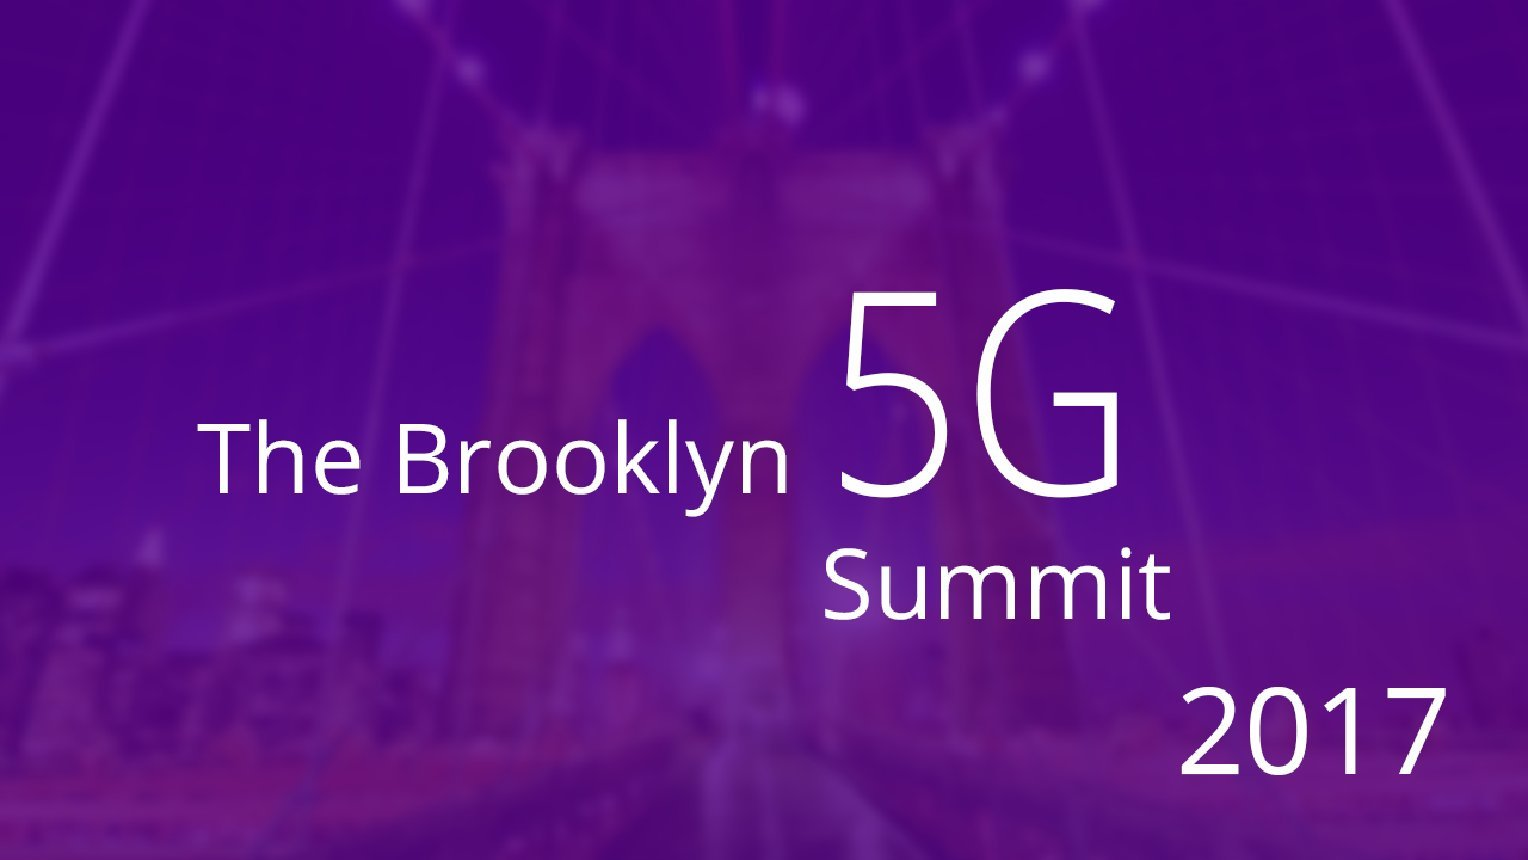 Brooklyn 5G Summit 2017 - Day 2 Full Stream